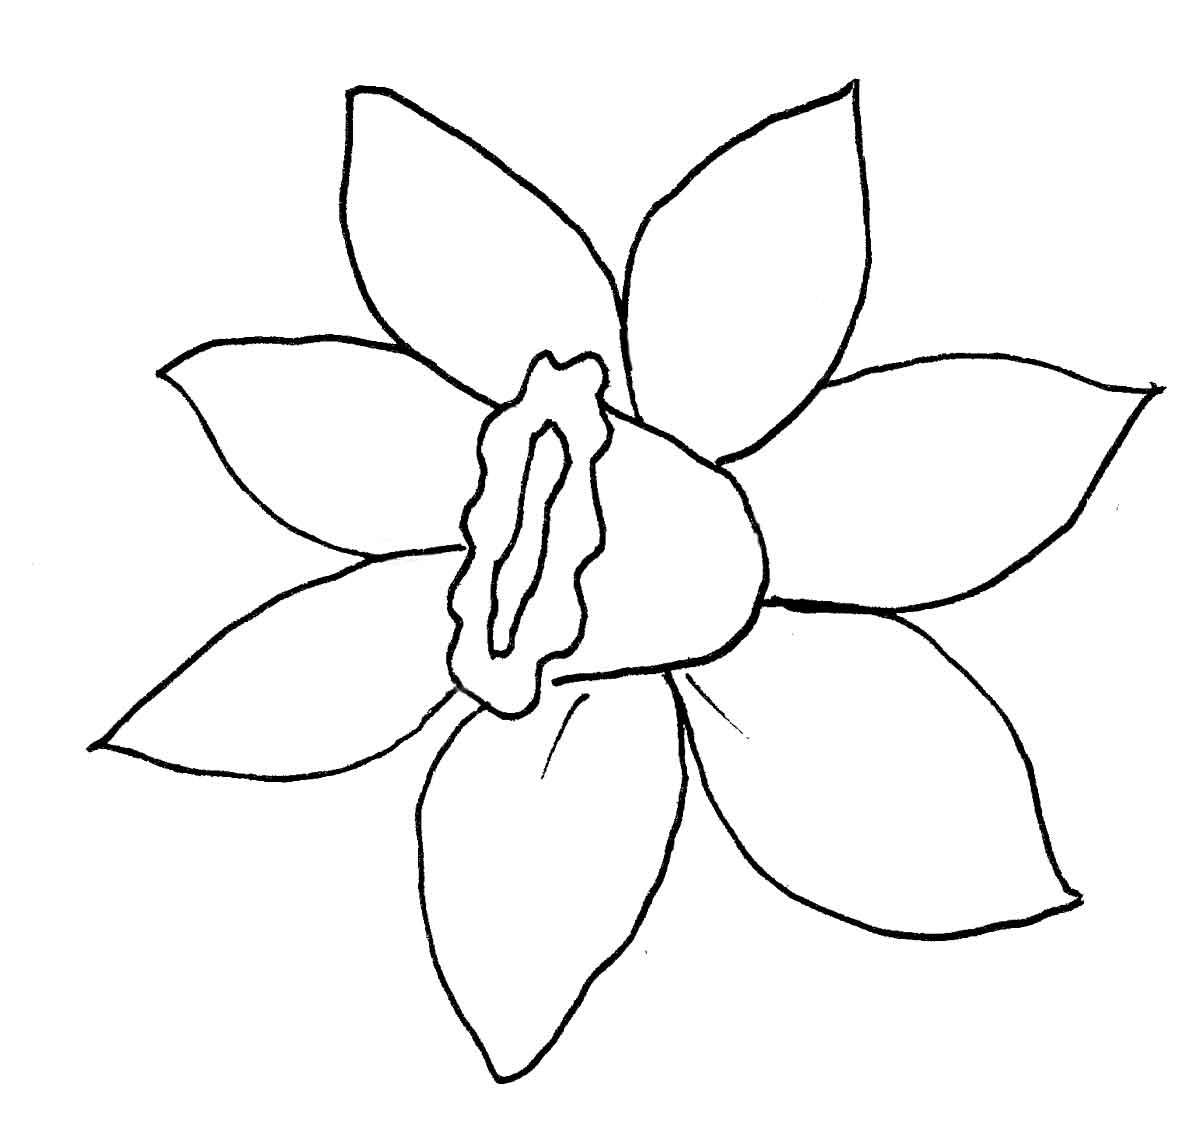 Daffodil template printable the image for Template of a daffodil